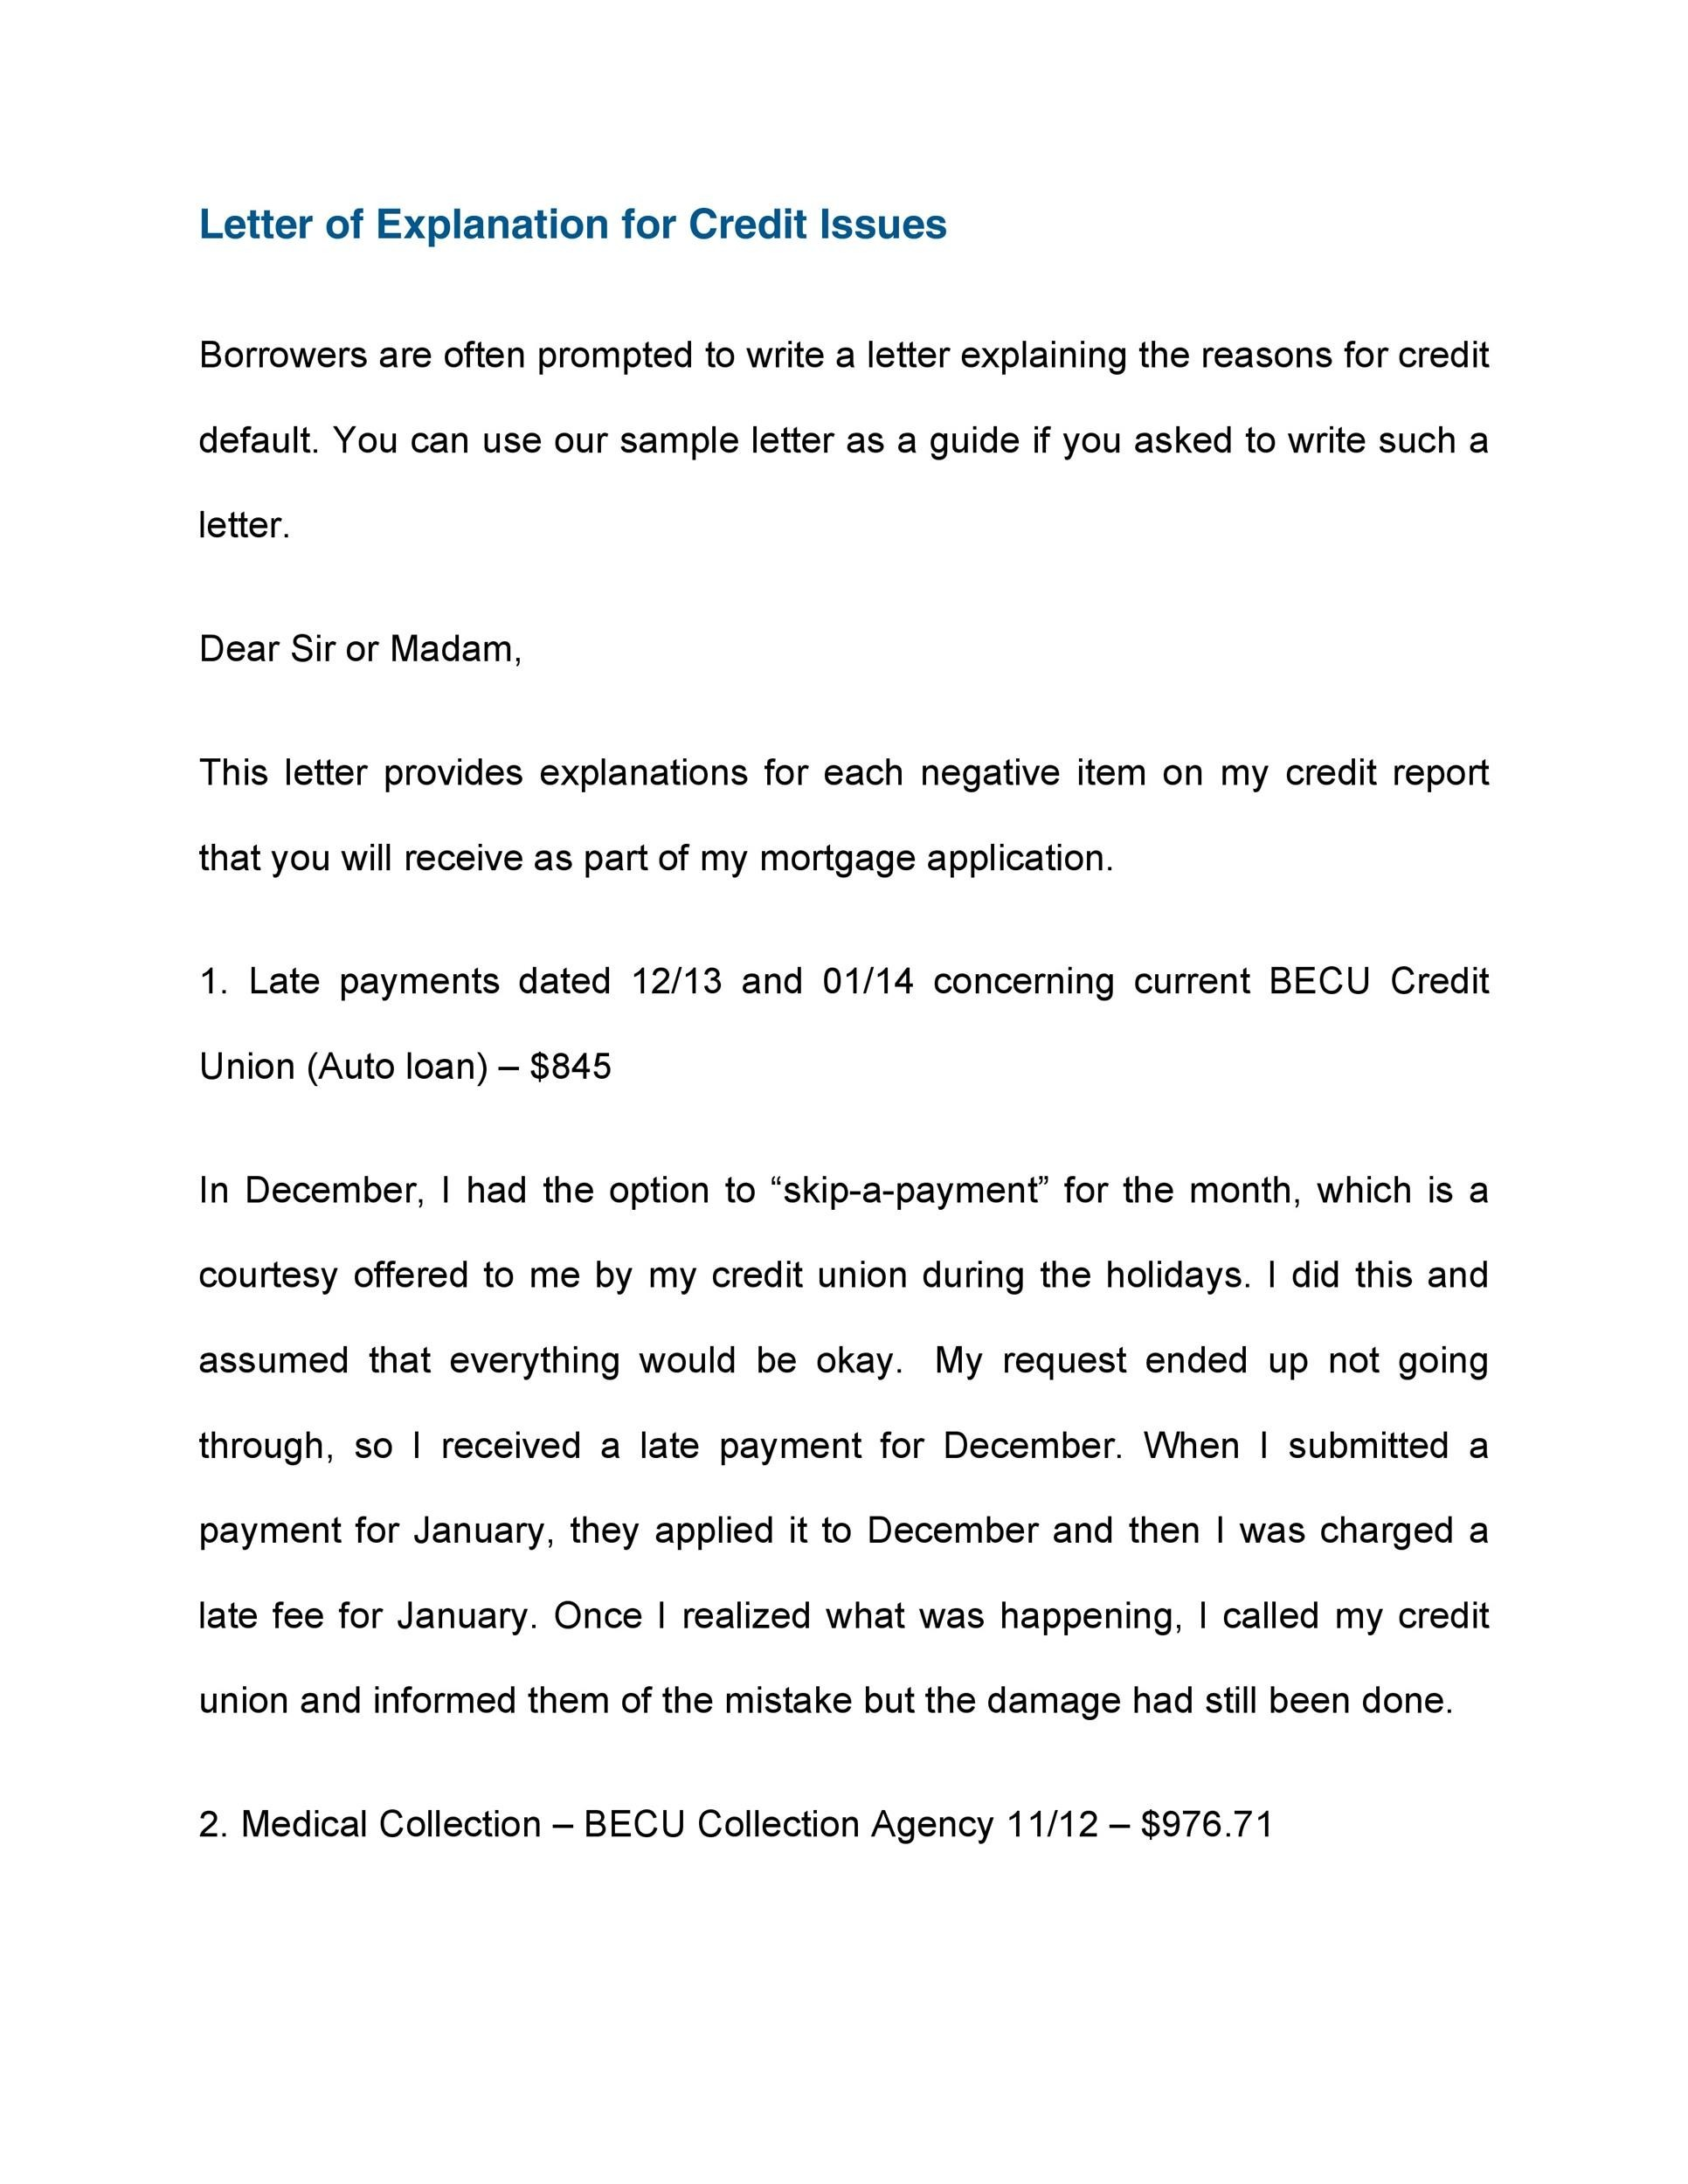 letter of explanation for medical bills sample letter explaining late payments 26534 | letter of explanation 34